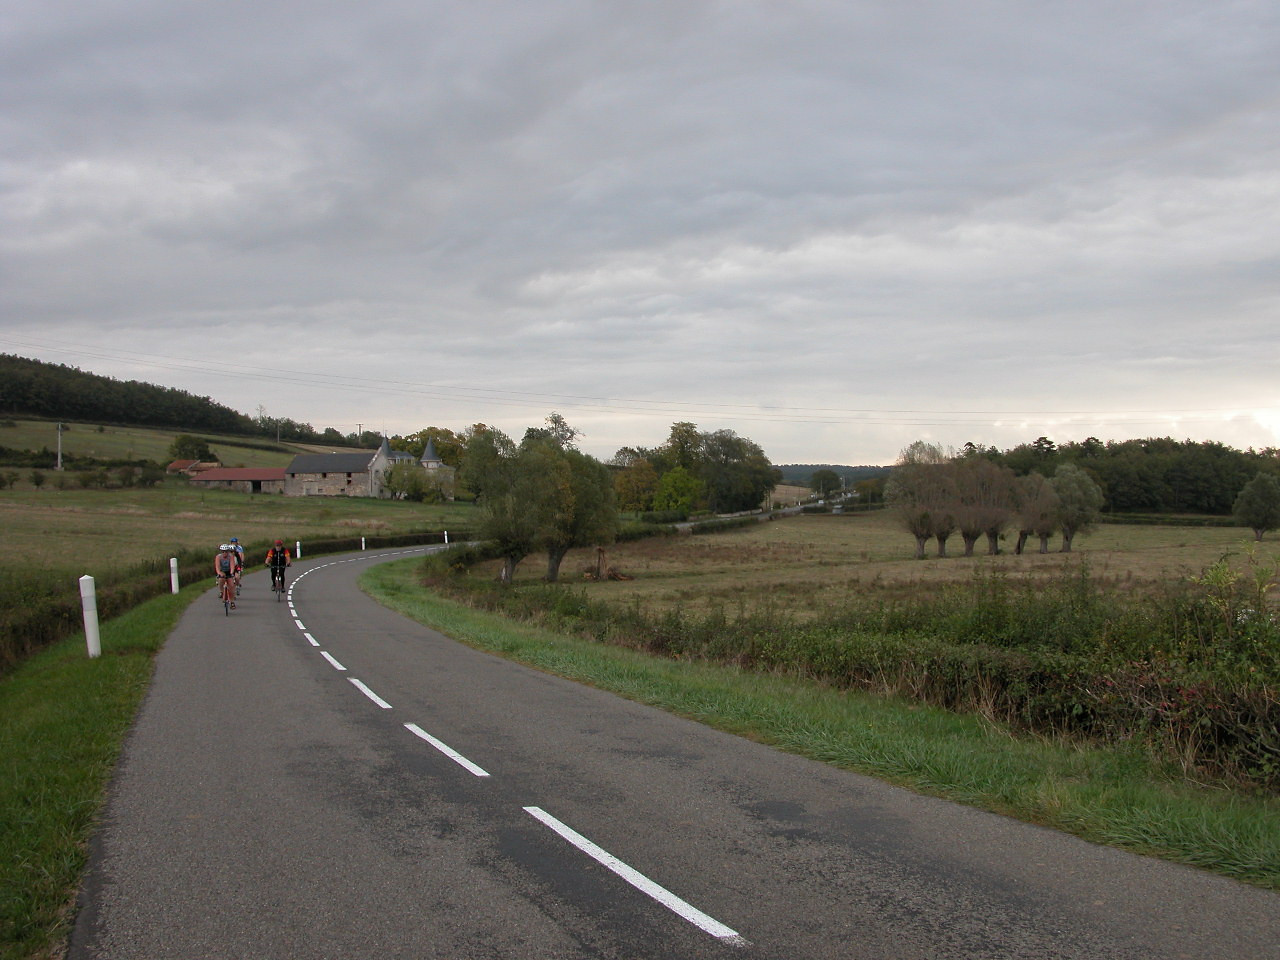 Great roads in burgundy (days 6 - 9)